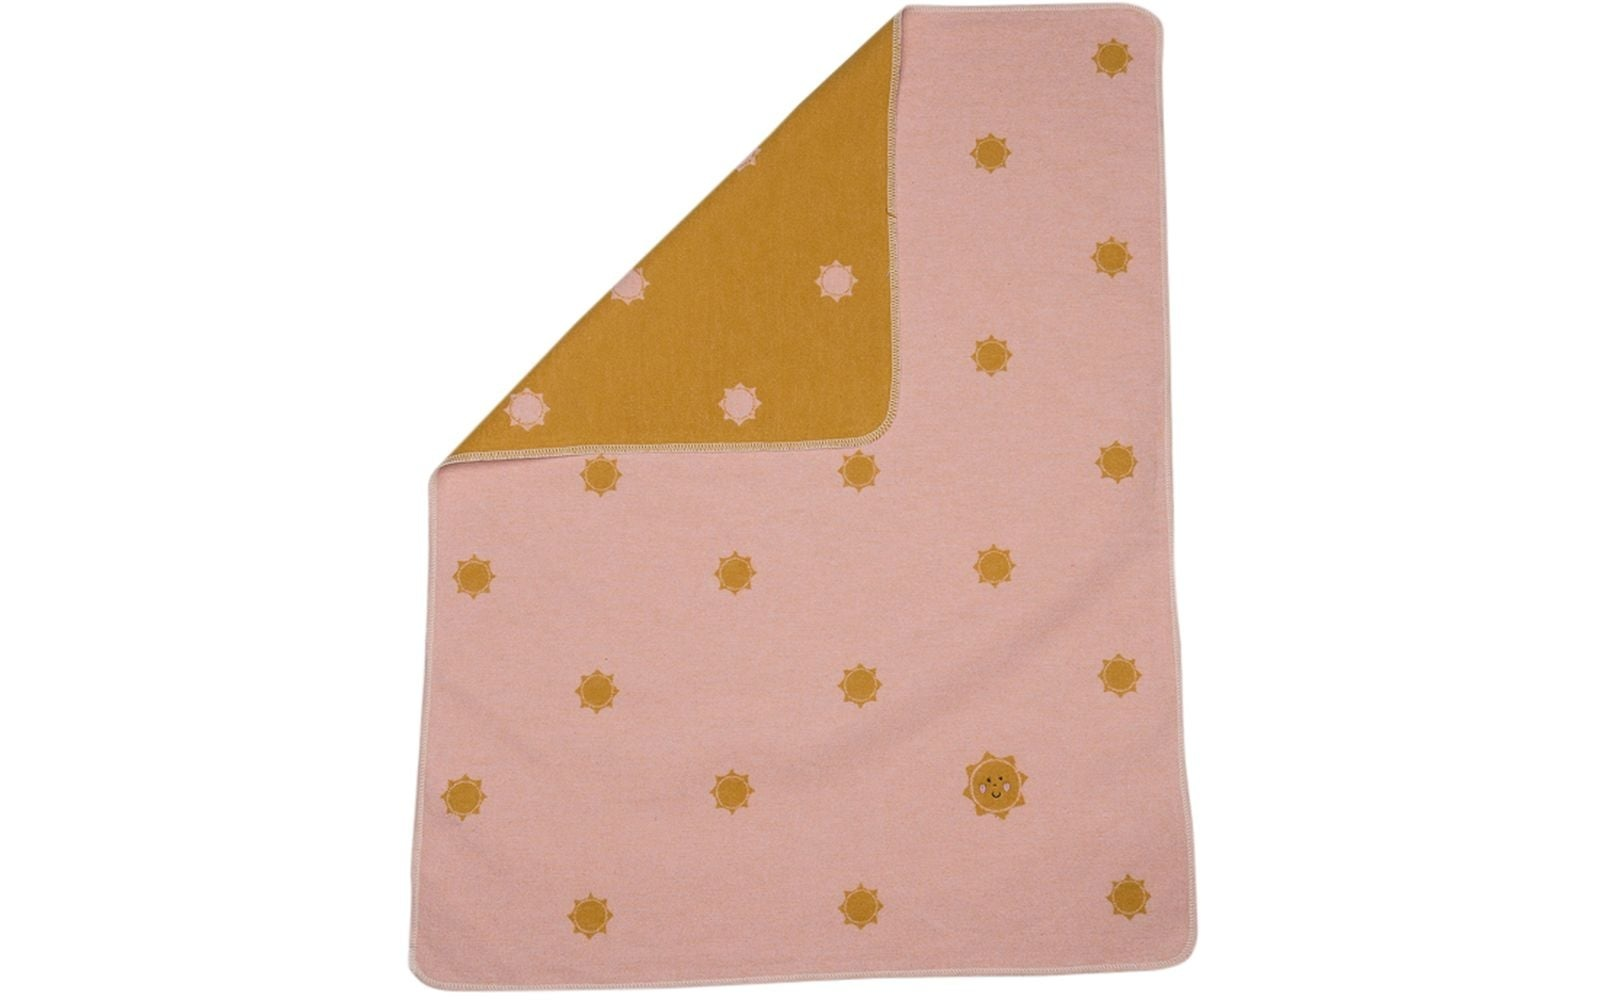 Baby Blanket - Suns - Pink-1